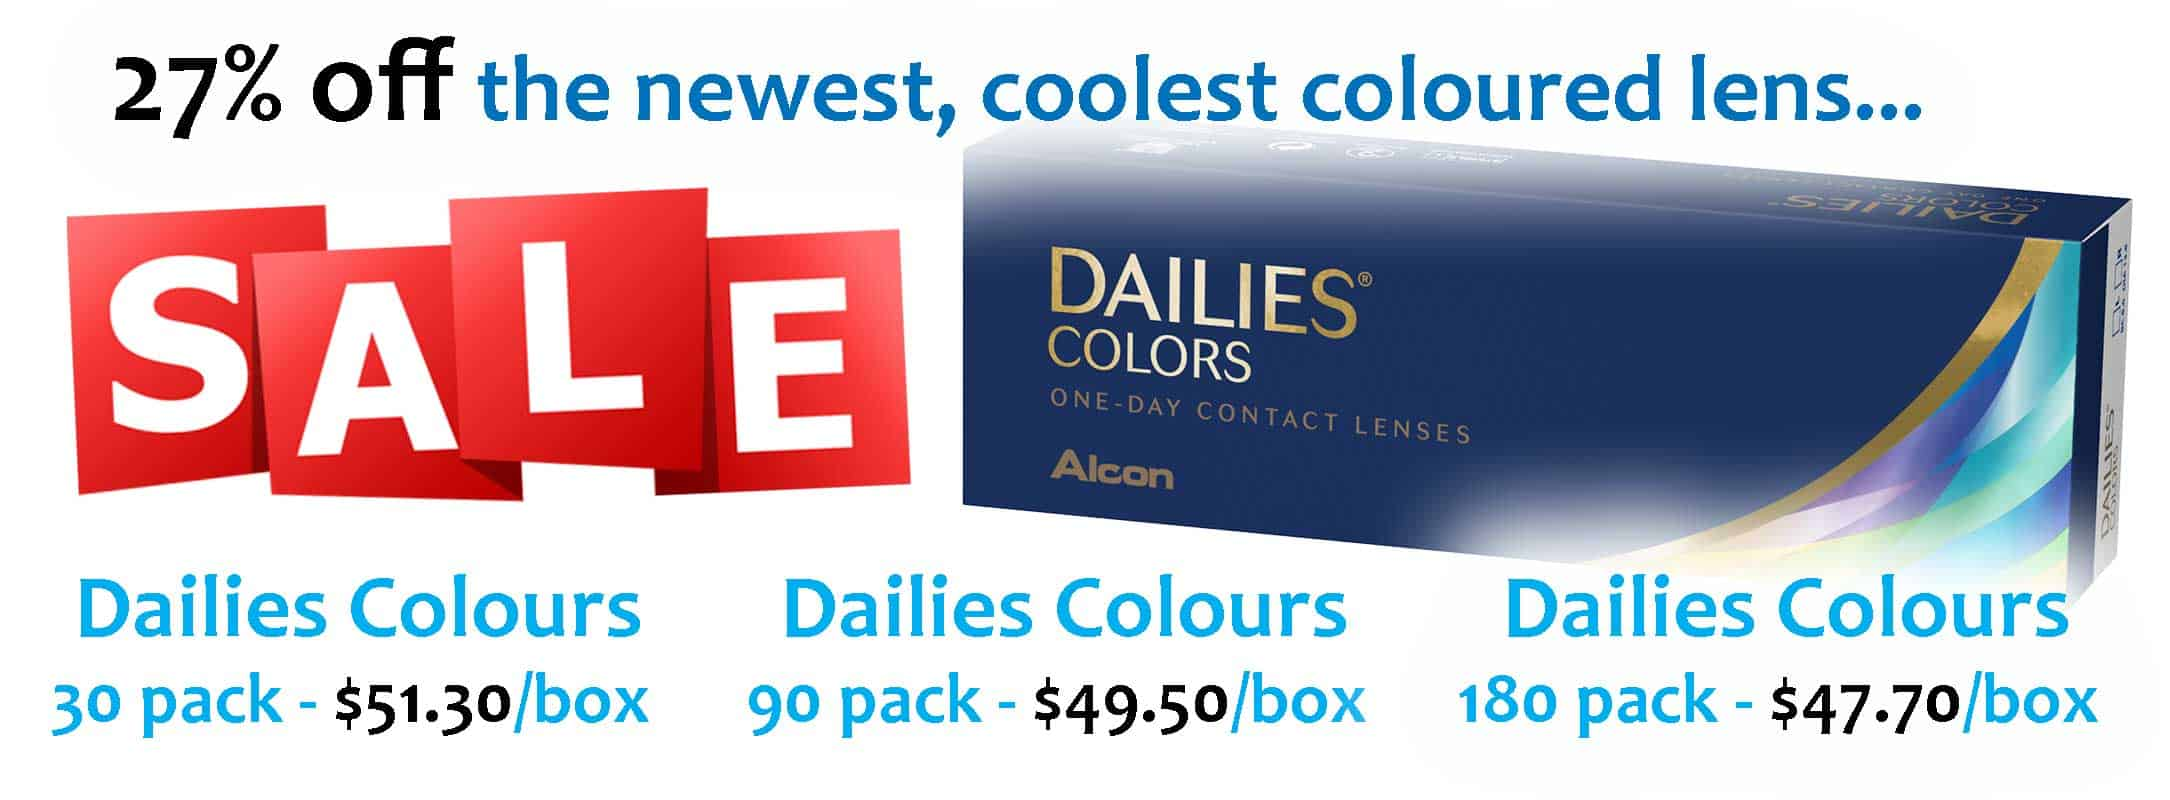 Save on Dailies Colors